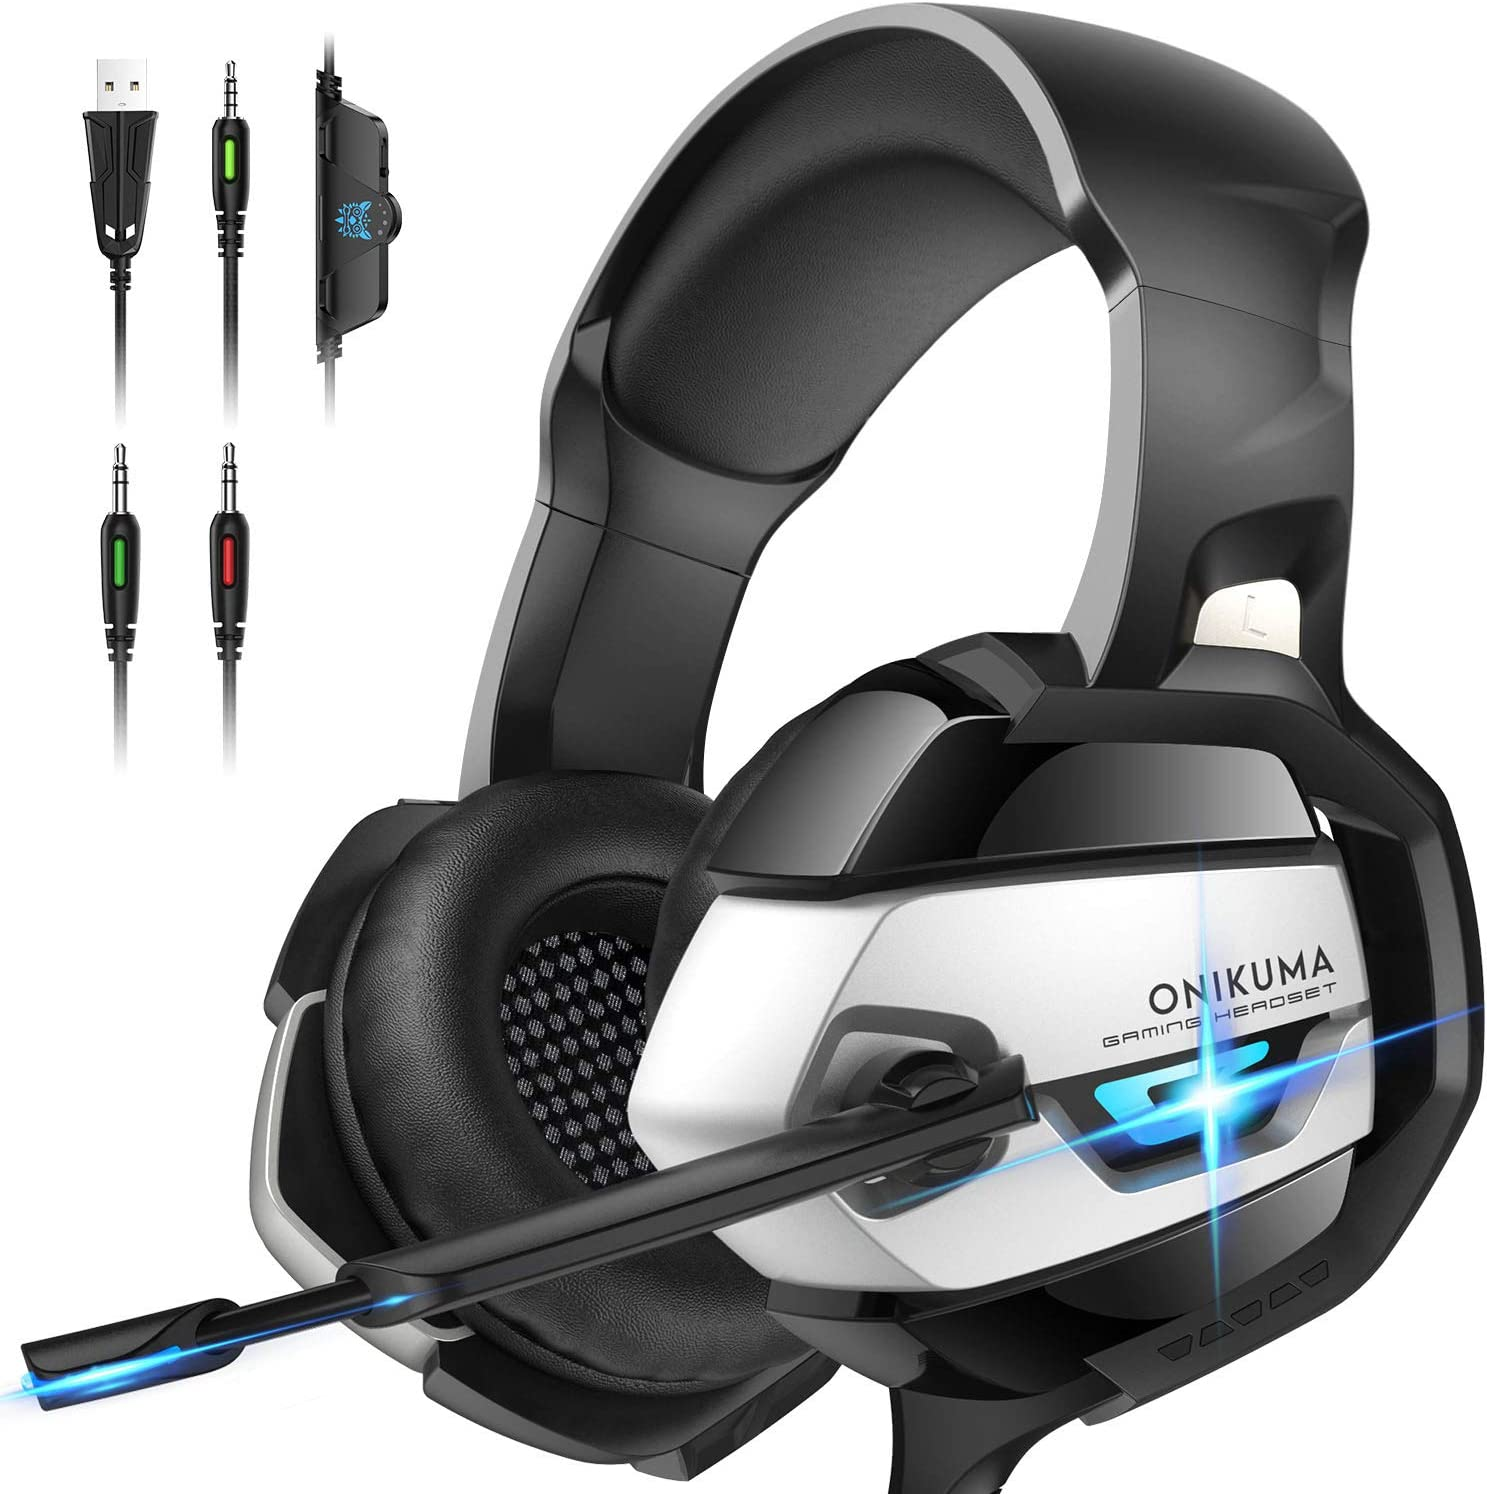 Amazon Com Onikuma Gaming Headset For Ps4 Ps4 Gaming Headset With 7 1 Surround Sound Xbox One Headset With Noise Canceling Mic Led Light Over Ear Headphones For Ps4 Xbox One Pc Mac Laptop Black